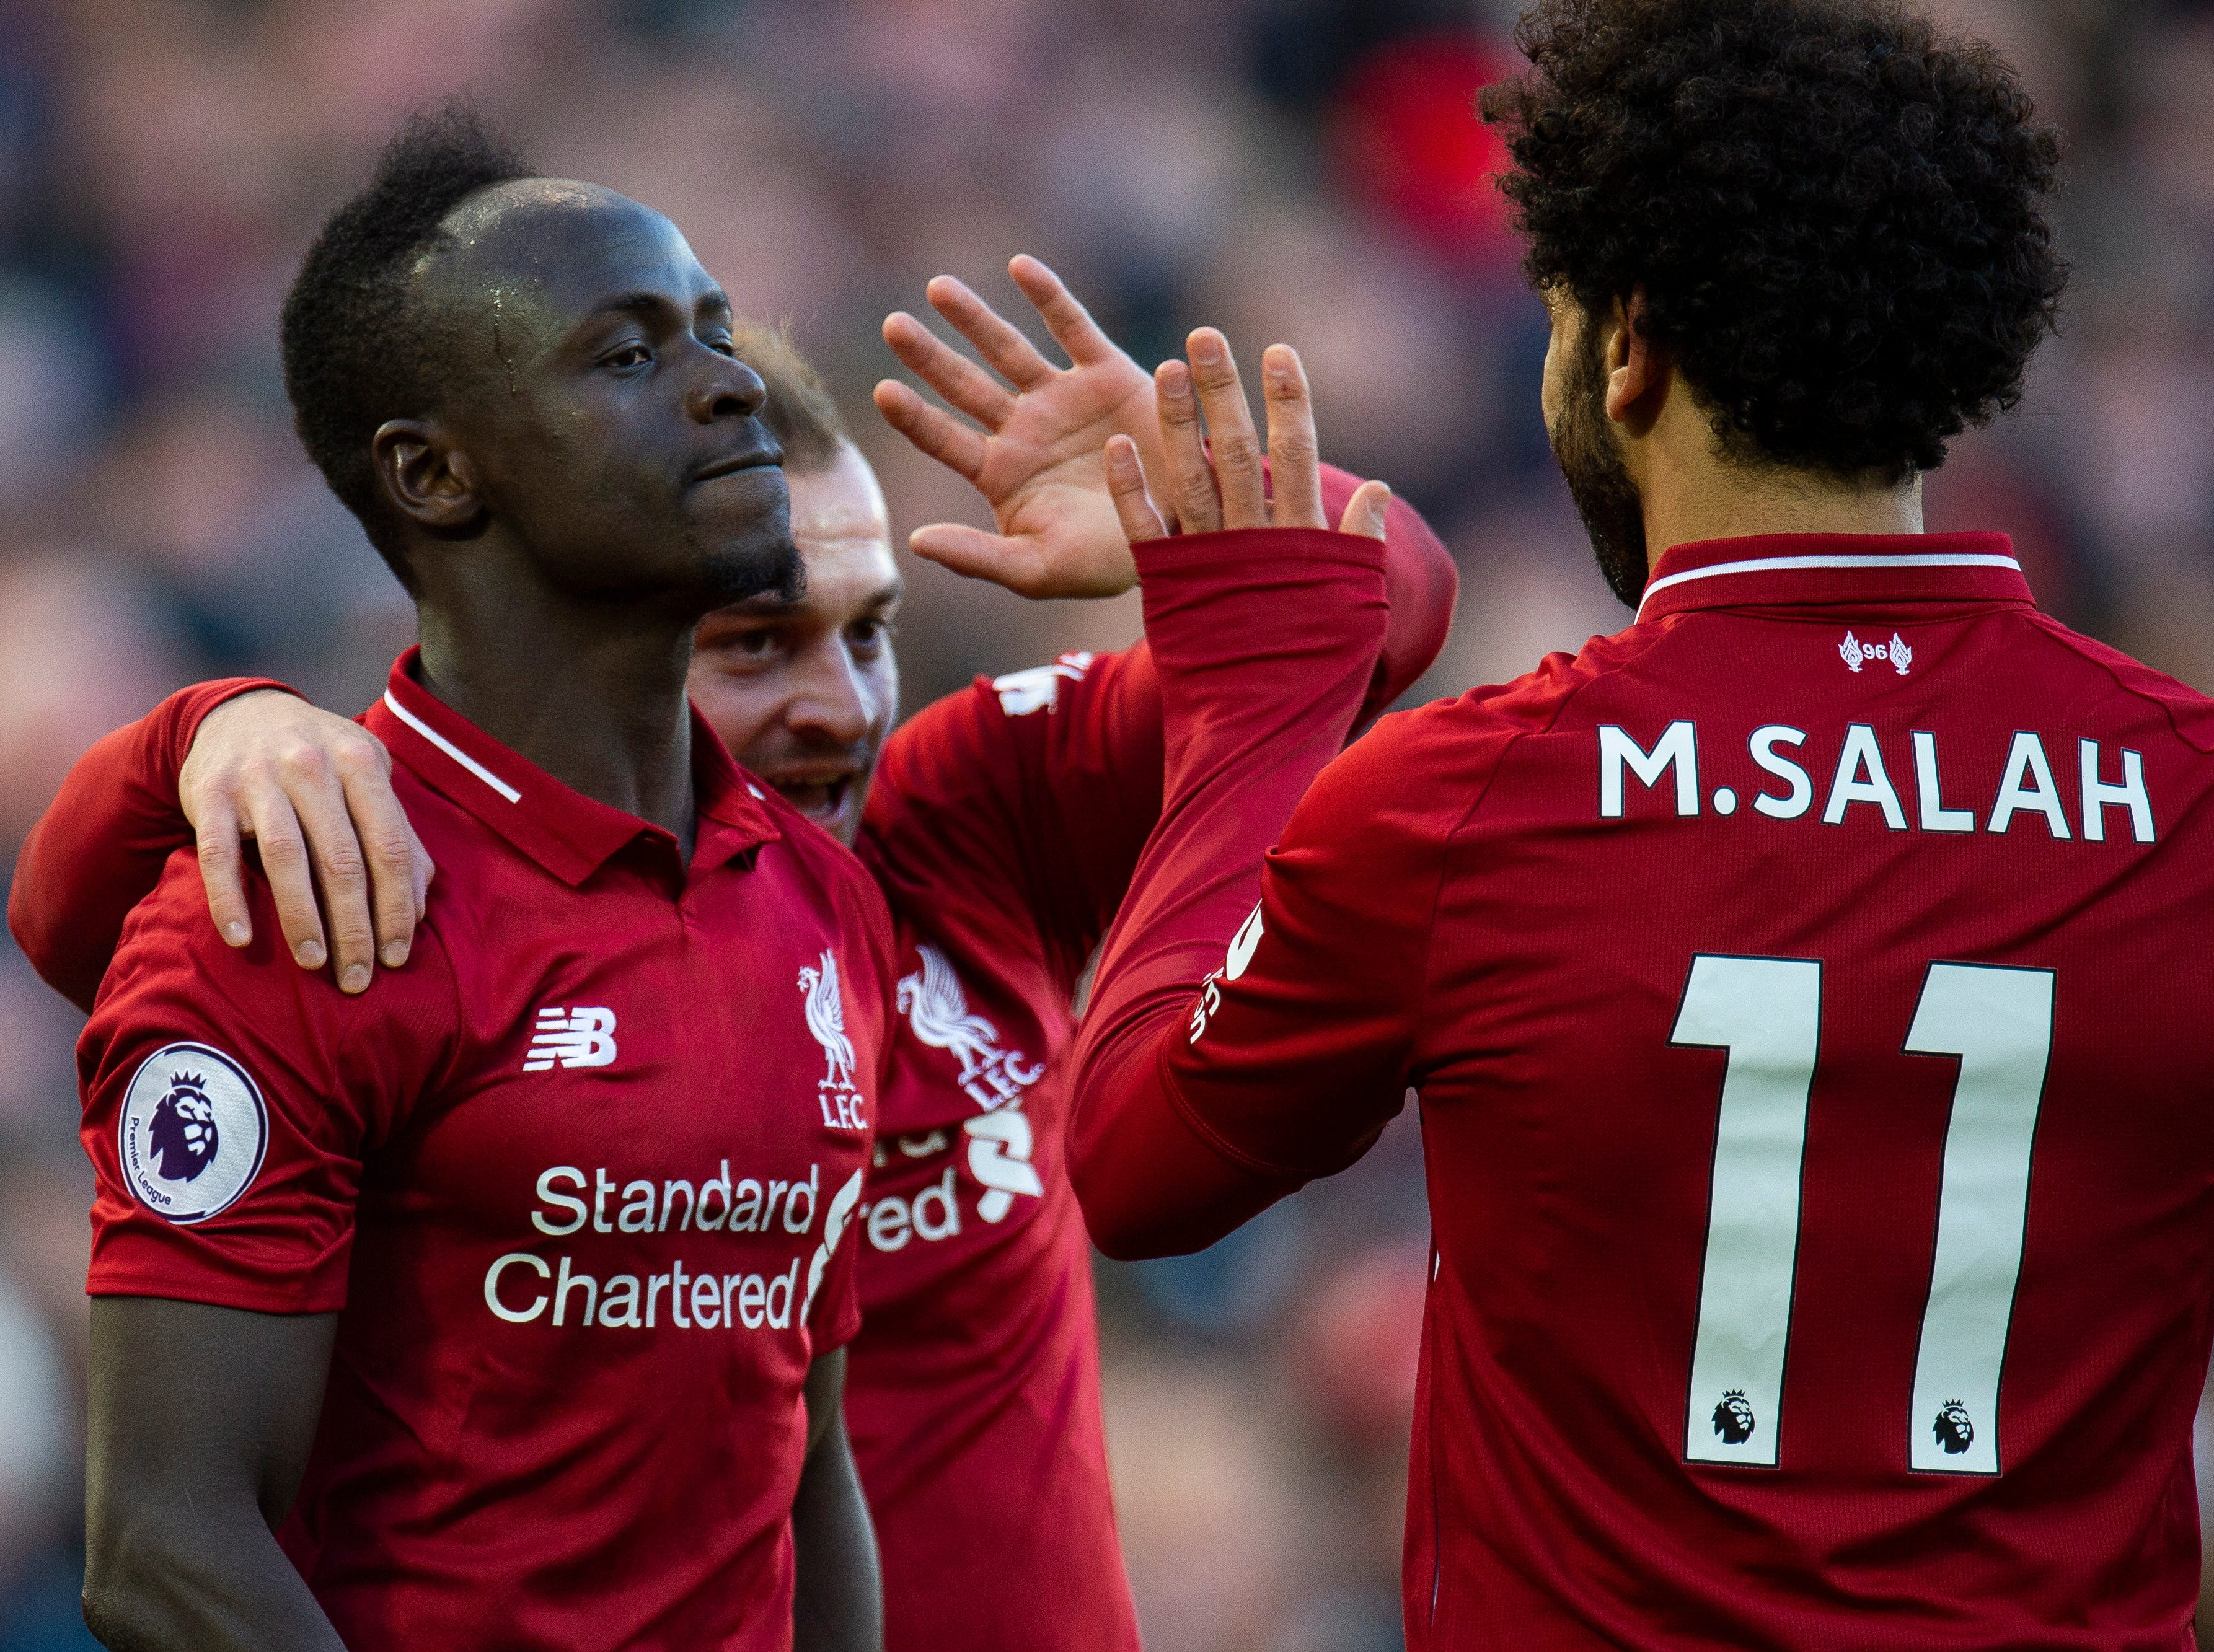 Liverpool's Mohamed Salah is congratulated by his teammates after scoring the fifth goal against Cardiff.